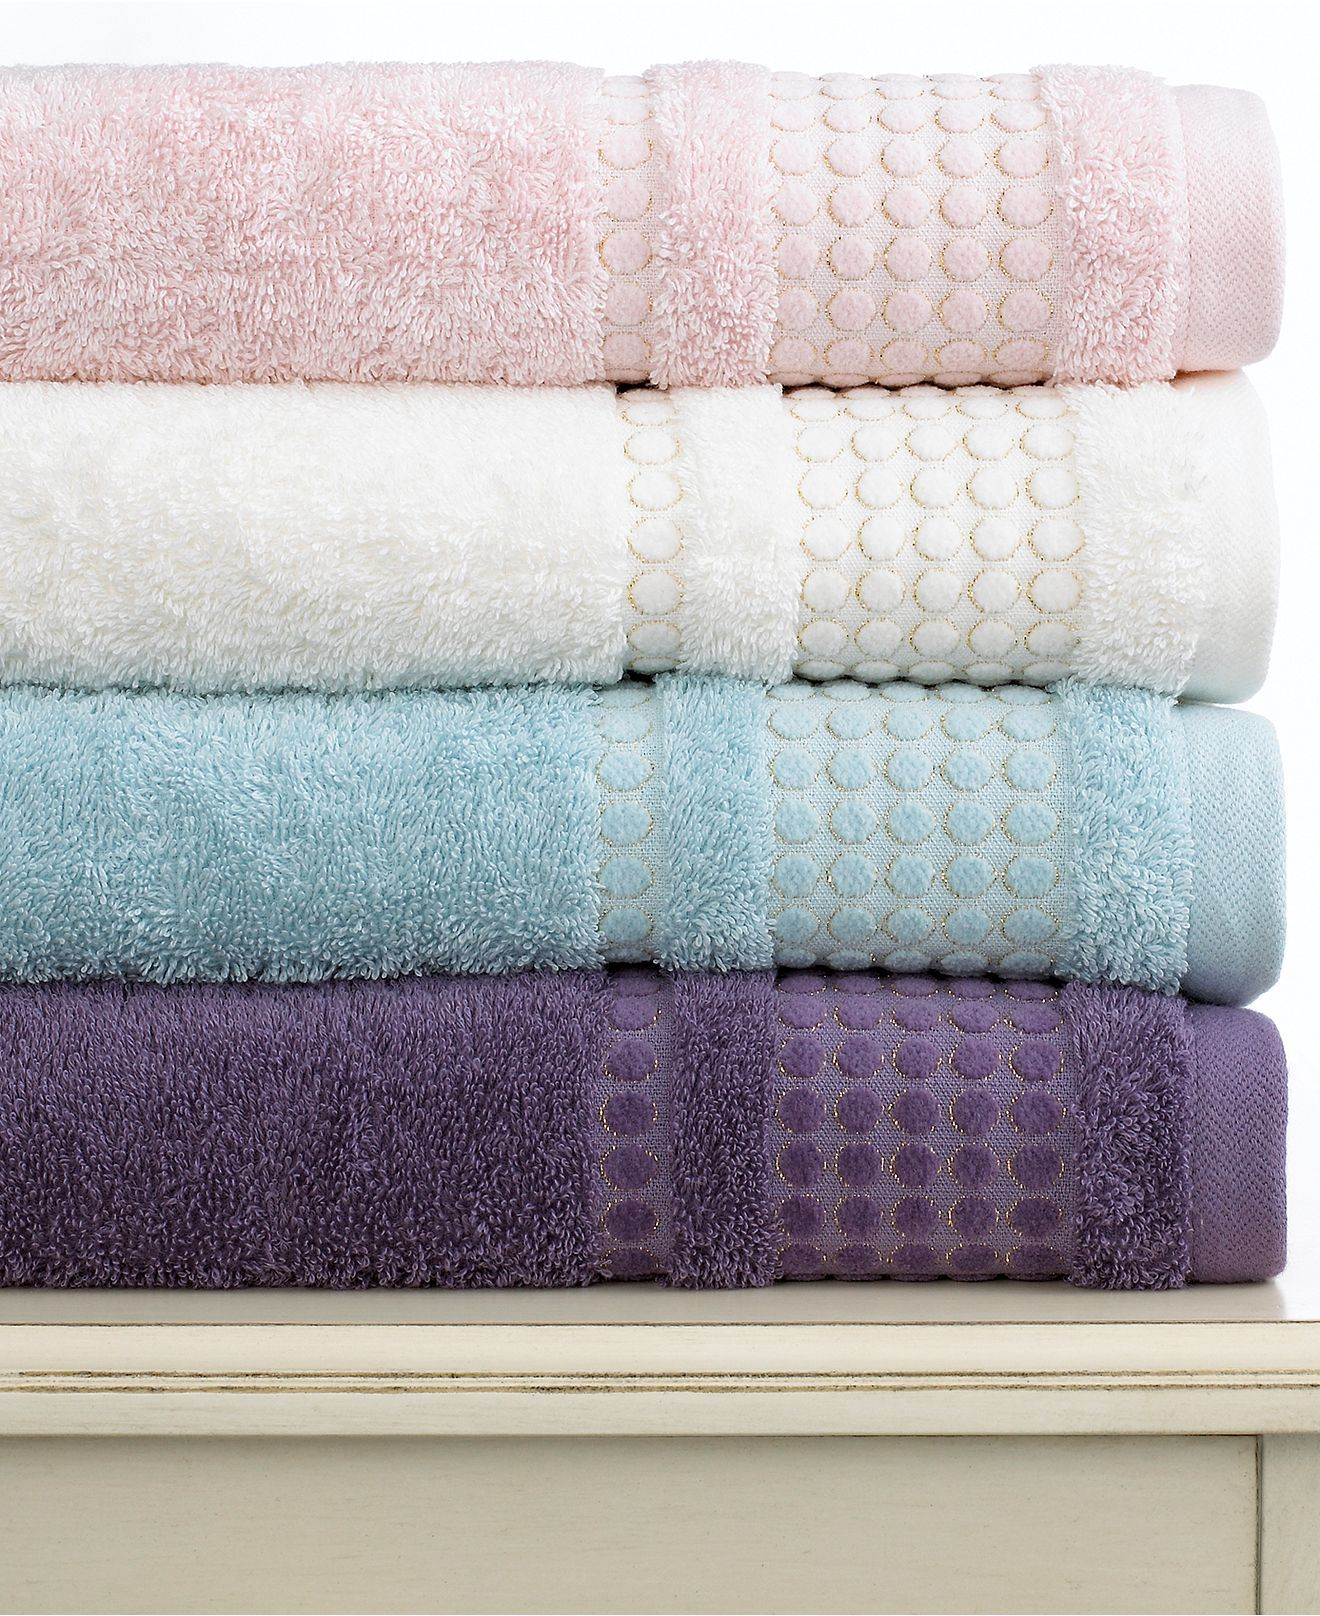 Hydrocotton Bath Towels Unique Bianca Bath Towels Art Deco Collection  Bath Towels  Bed & Bath 2018